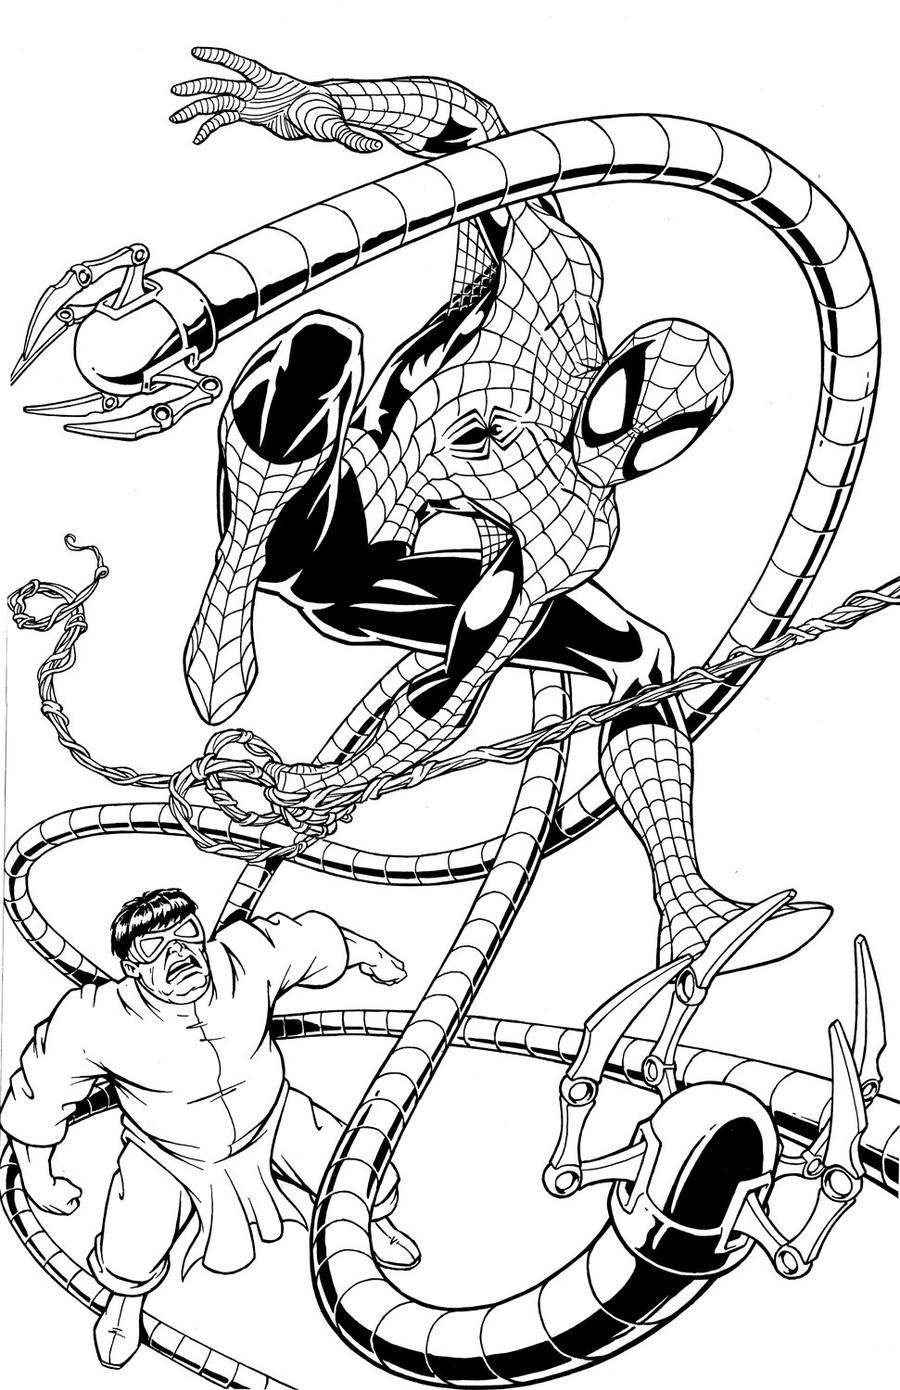 Spider Man Vs Doctor Octopus By Wolfehanson On Deviantart Doc Ock Coloring Pages